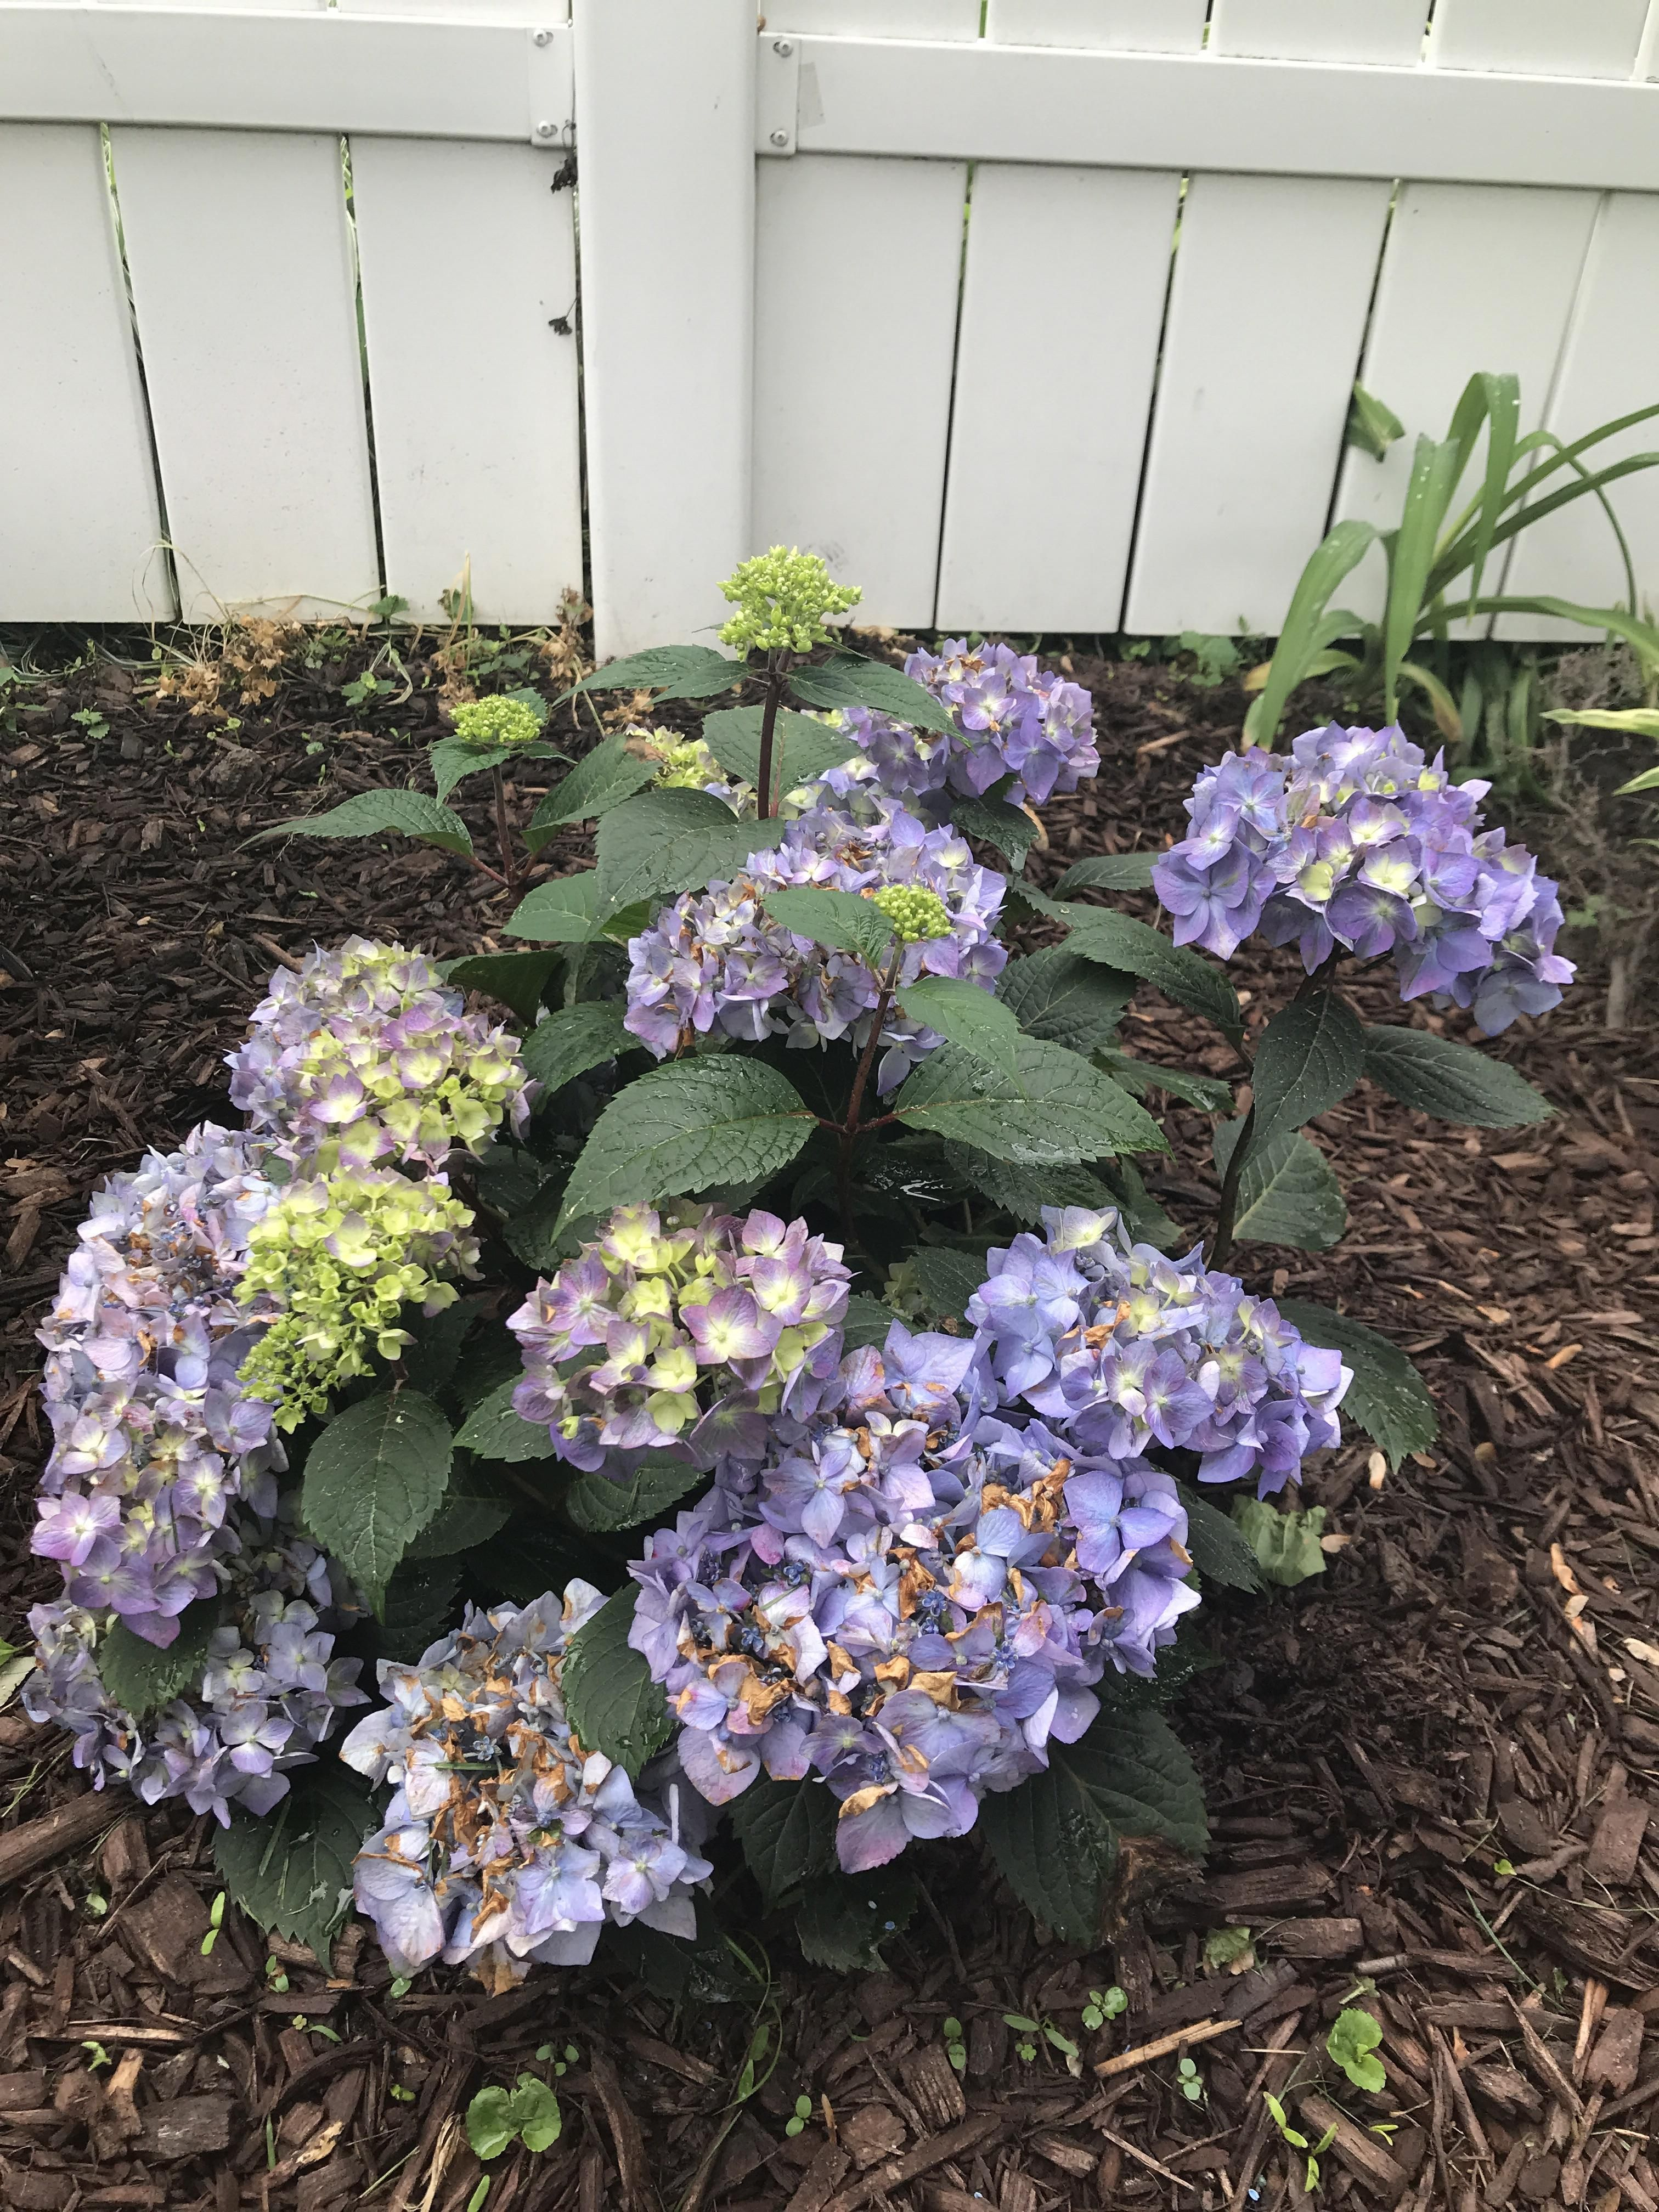 Why Are My Hydrangeas Turning Brown Gardening Garden Diy Home Flowers Roses Nature Landscaping Hydrangea Not Blooming Brown Flowers Hydrangea Flower